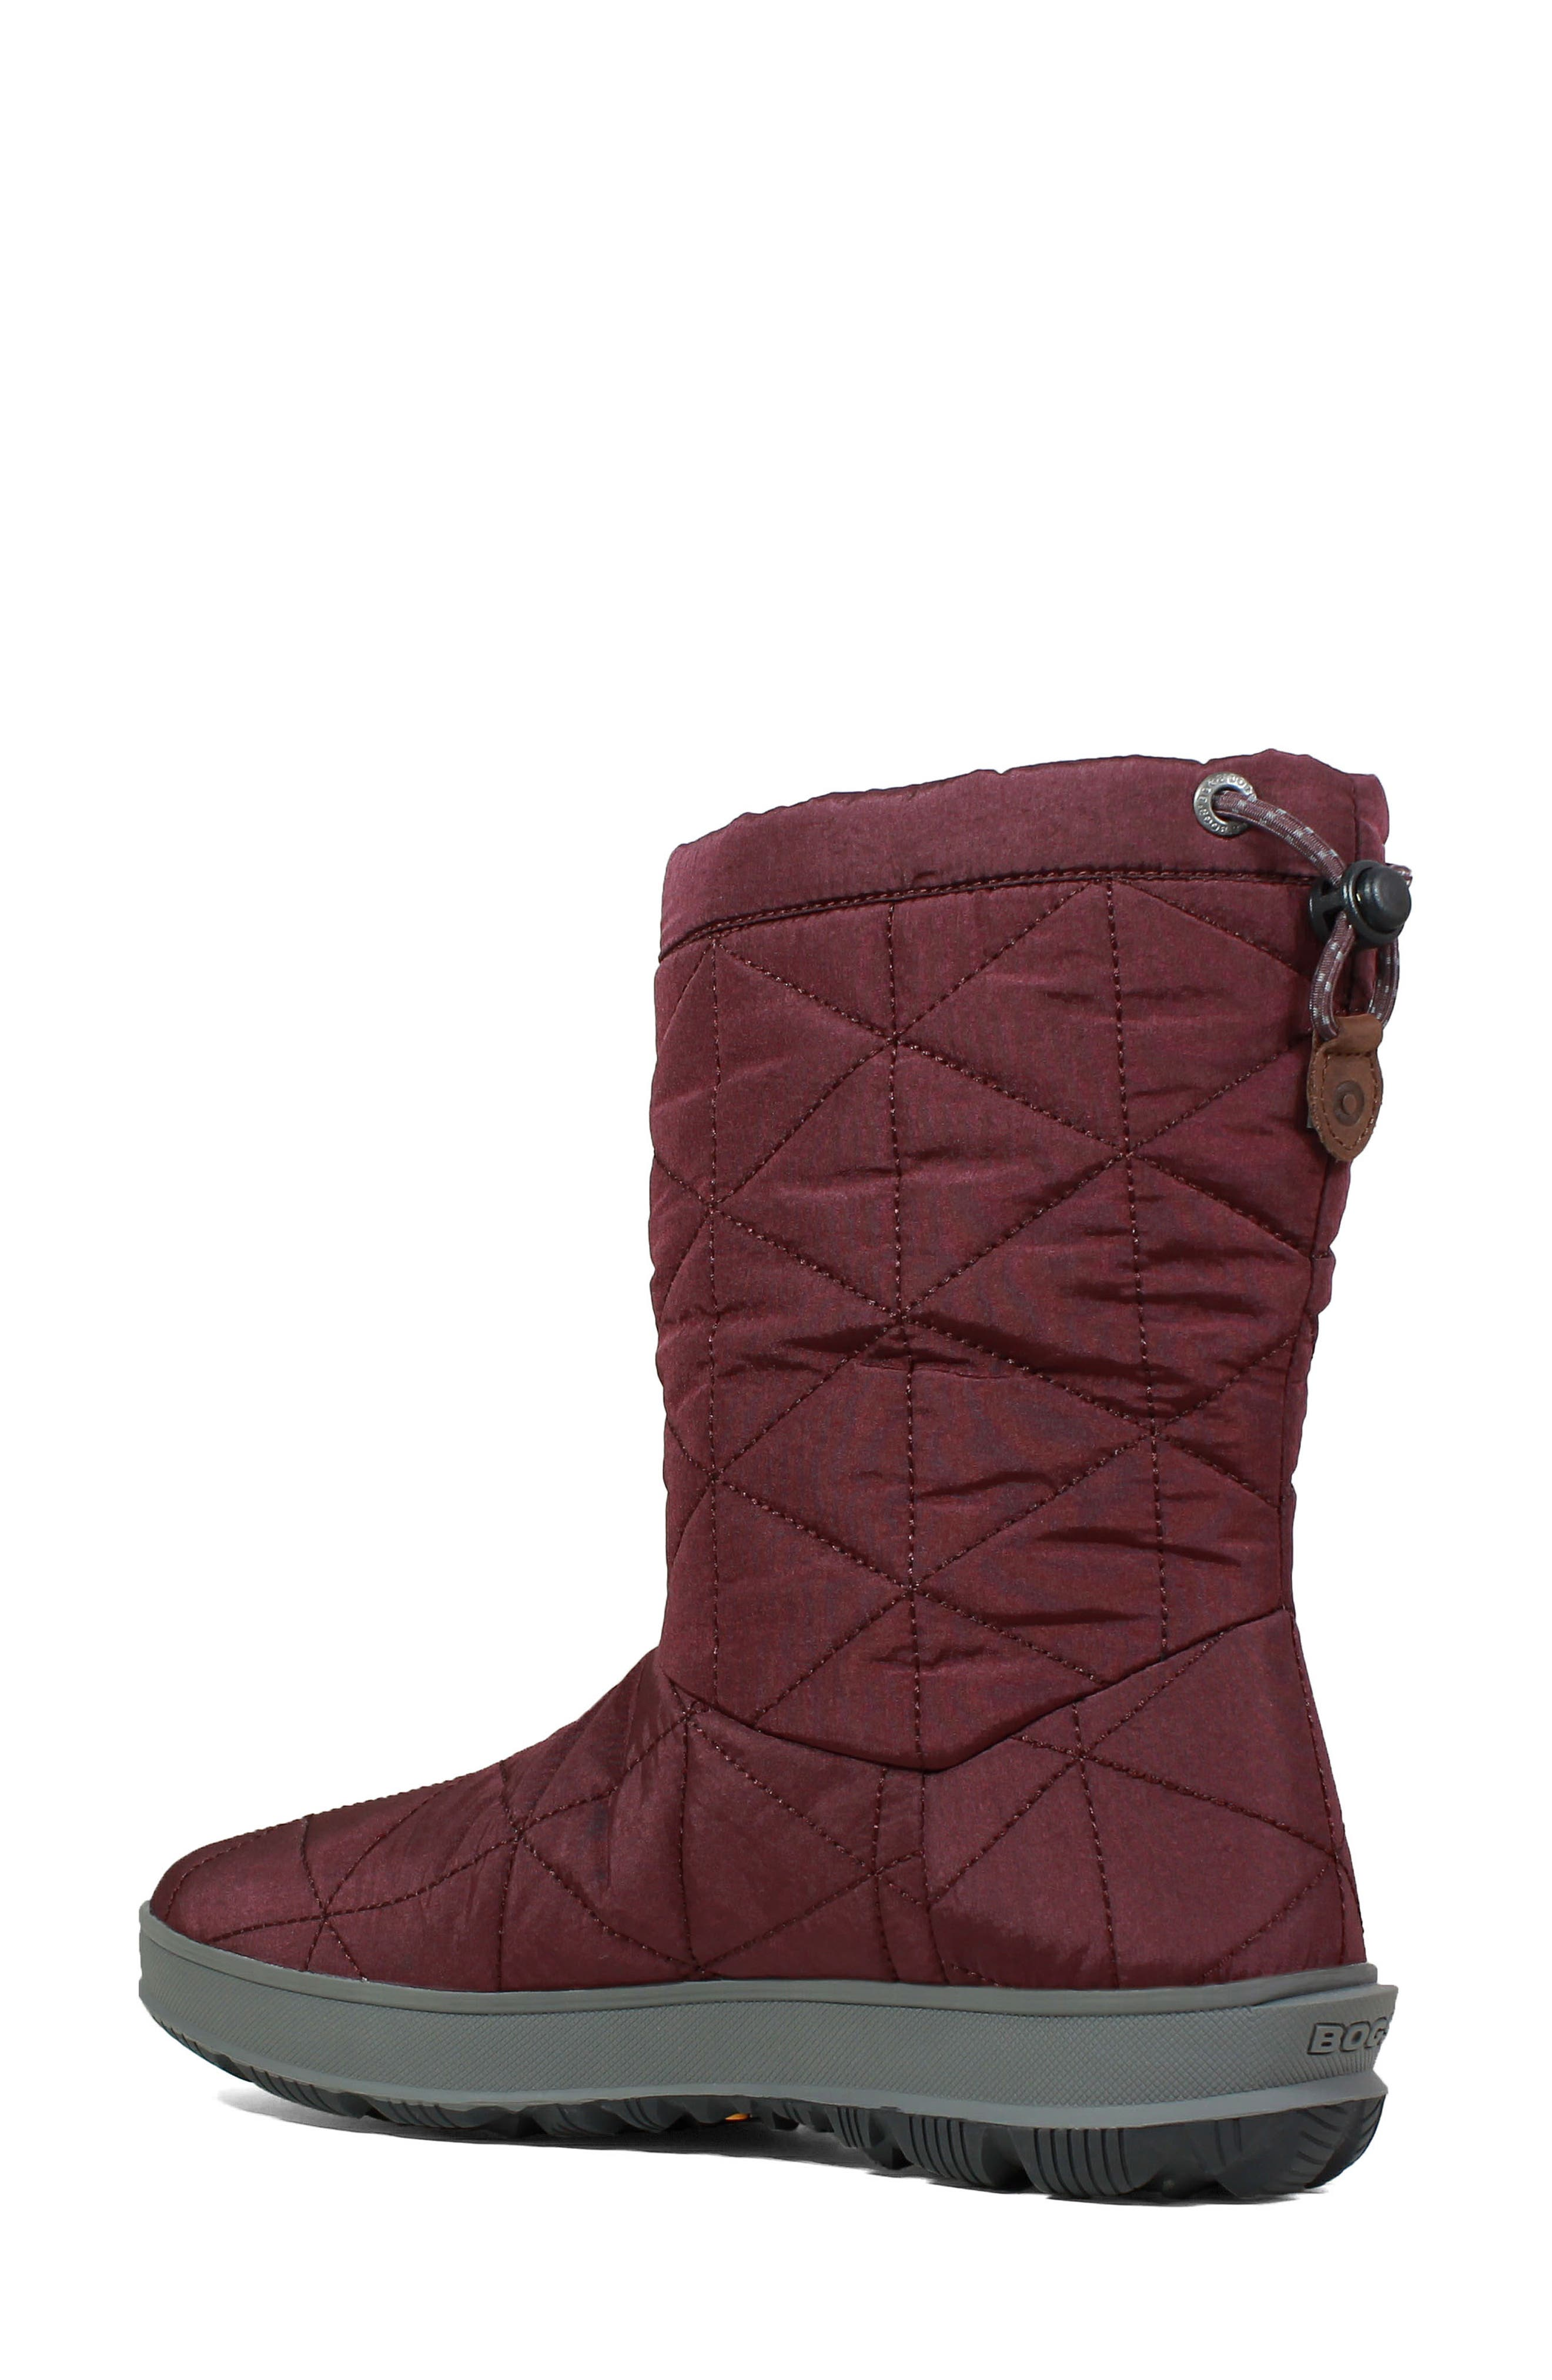 5c72c5fe5 Women s Purple Winter   Snow Boots